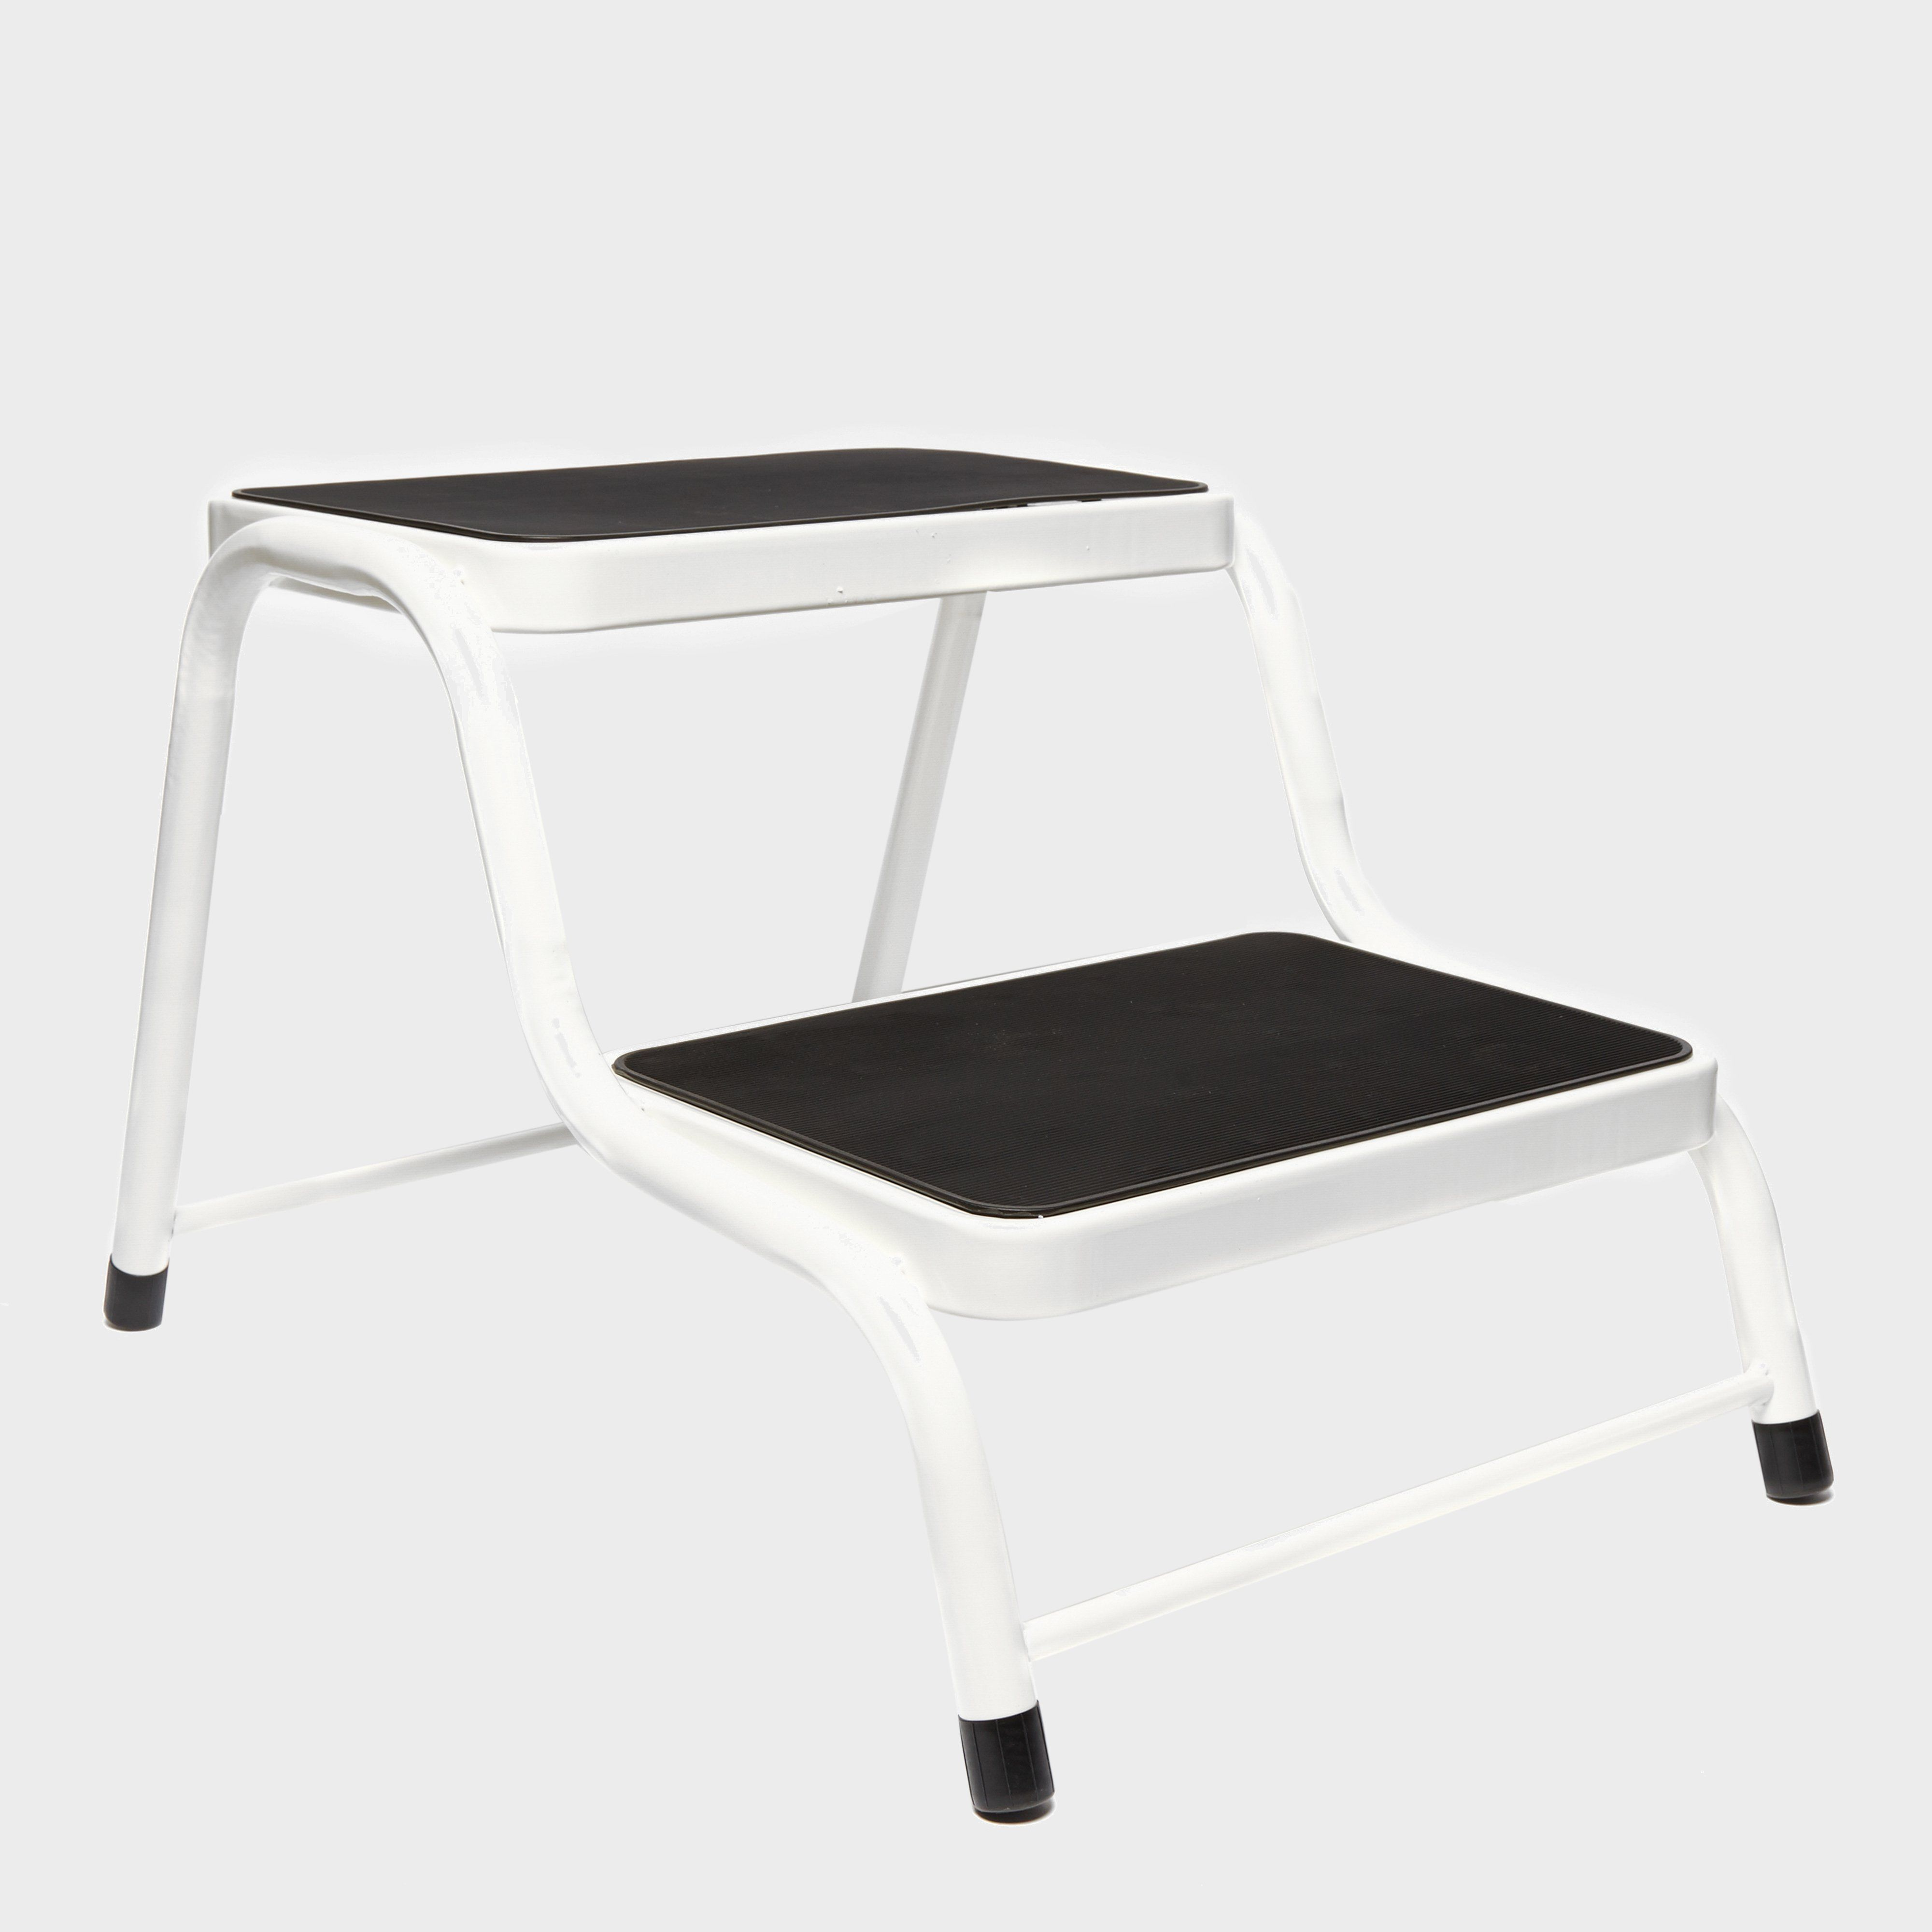 QUEST Double Step Stepladder